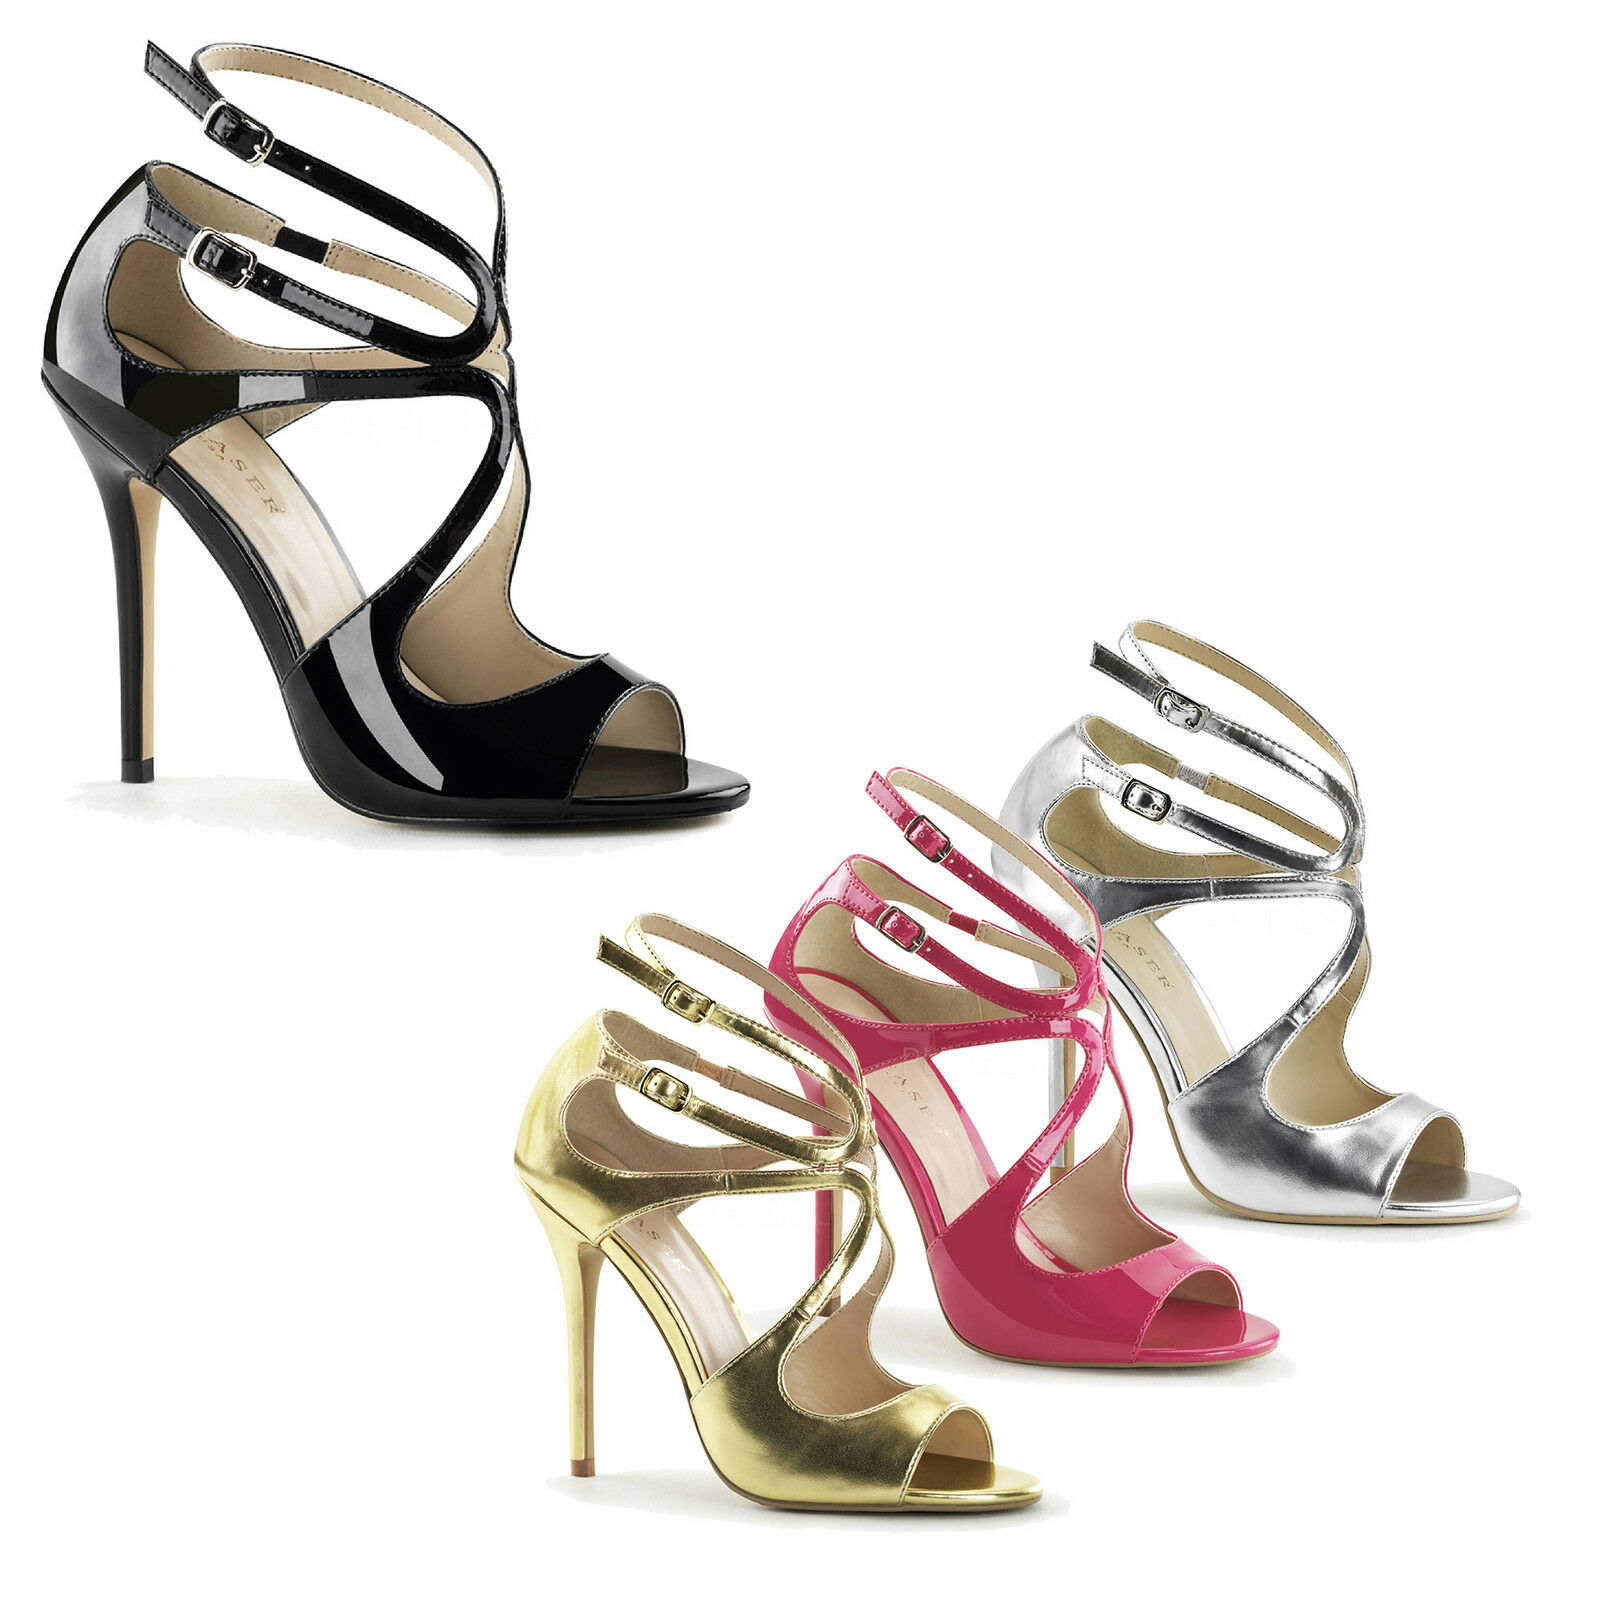 PLEASER - Amuse-15 Stunning Sandals With With With Waving Design, Peep Toe, Strappy    Exquisite Verarbeitung  d32185